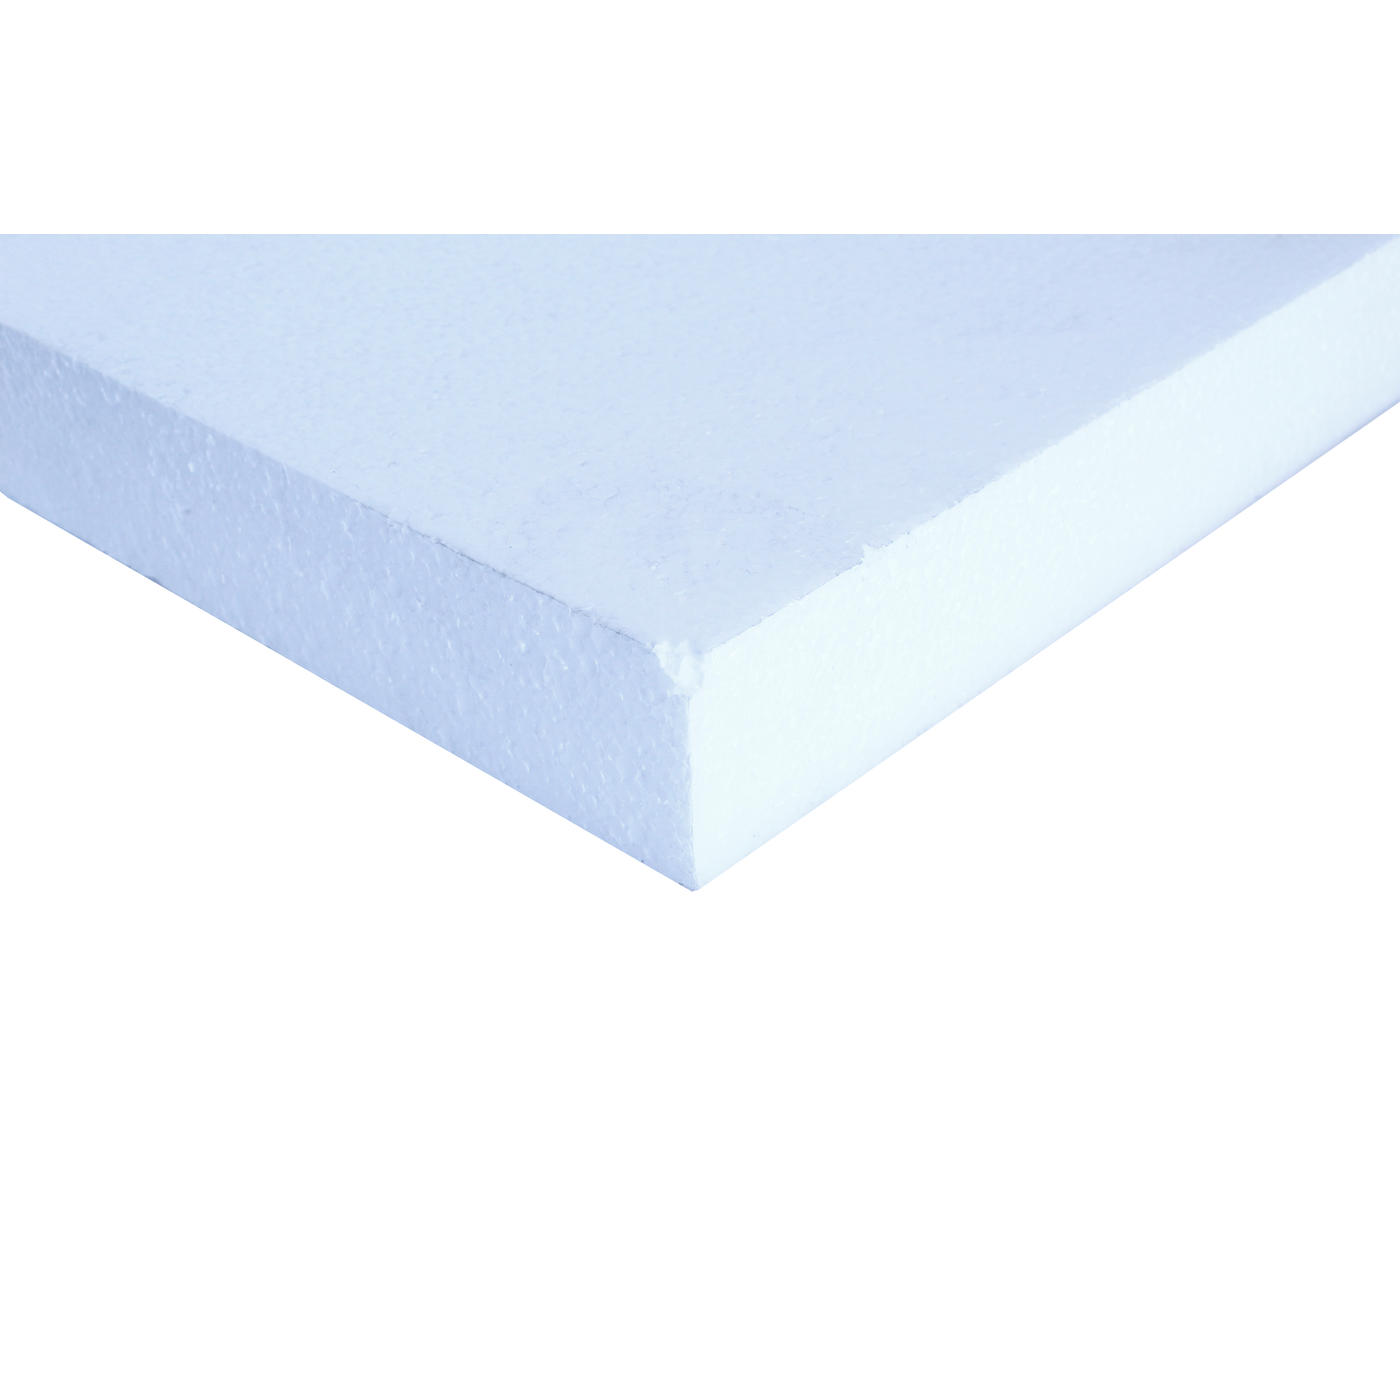 House Insulation Building Materials Leroy Merlin South